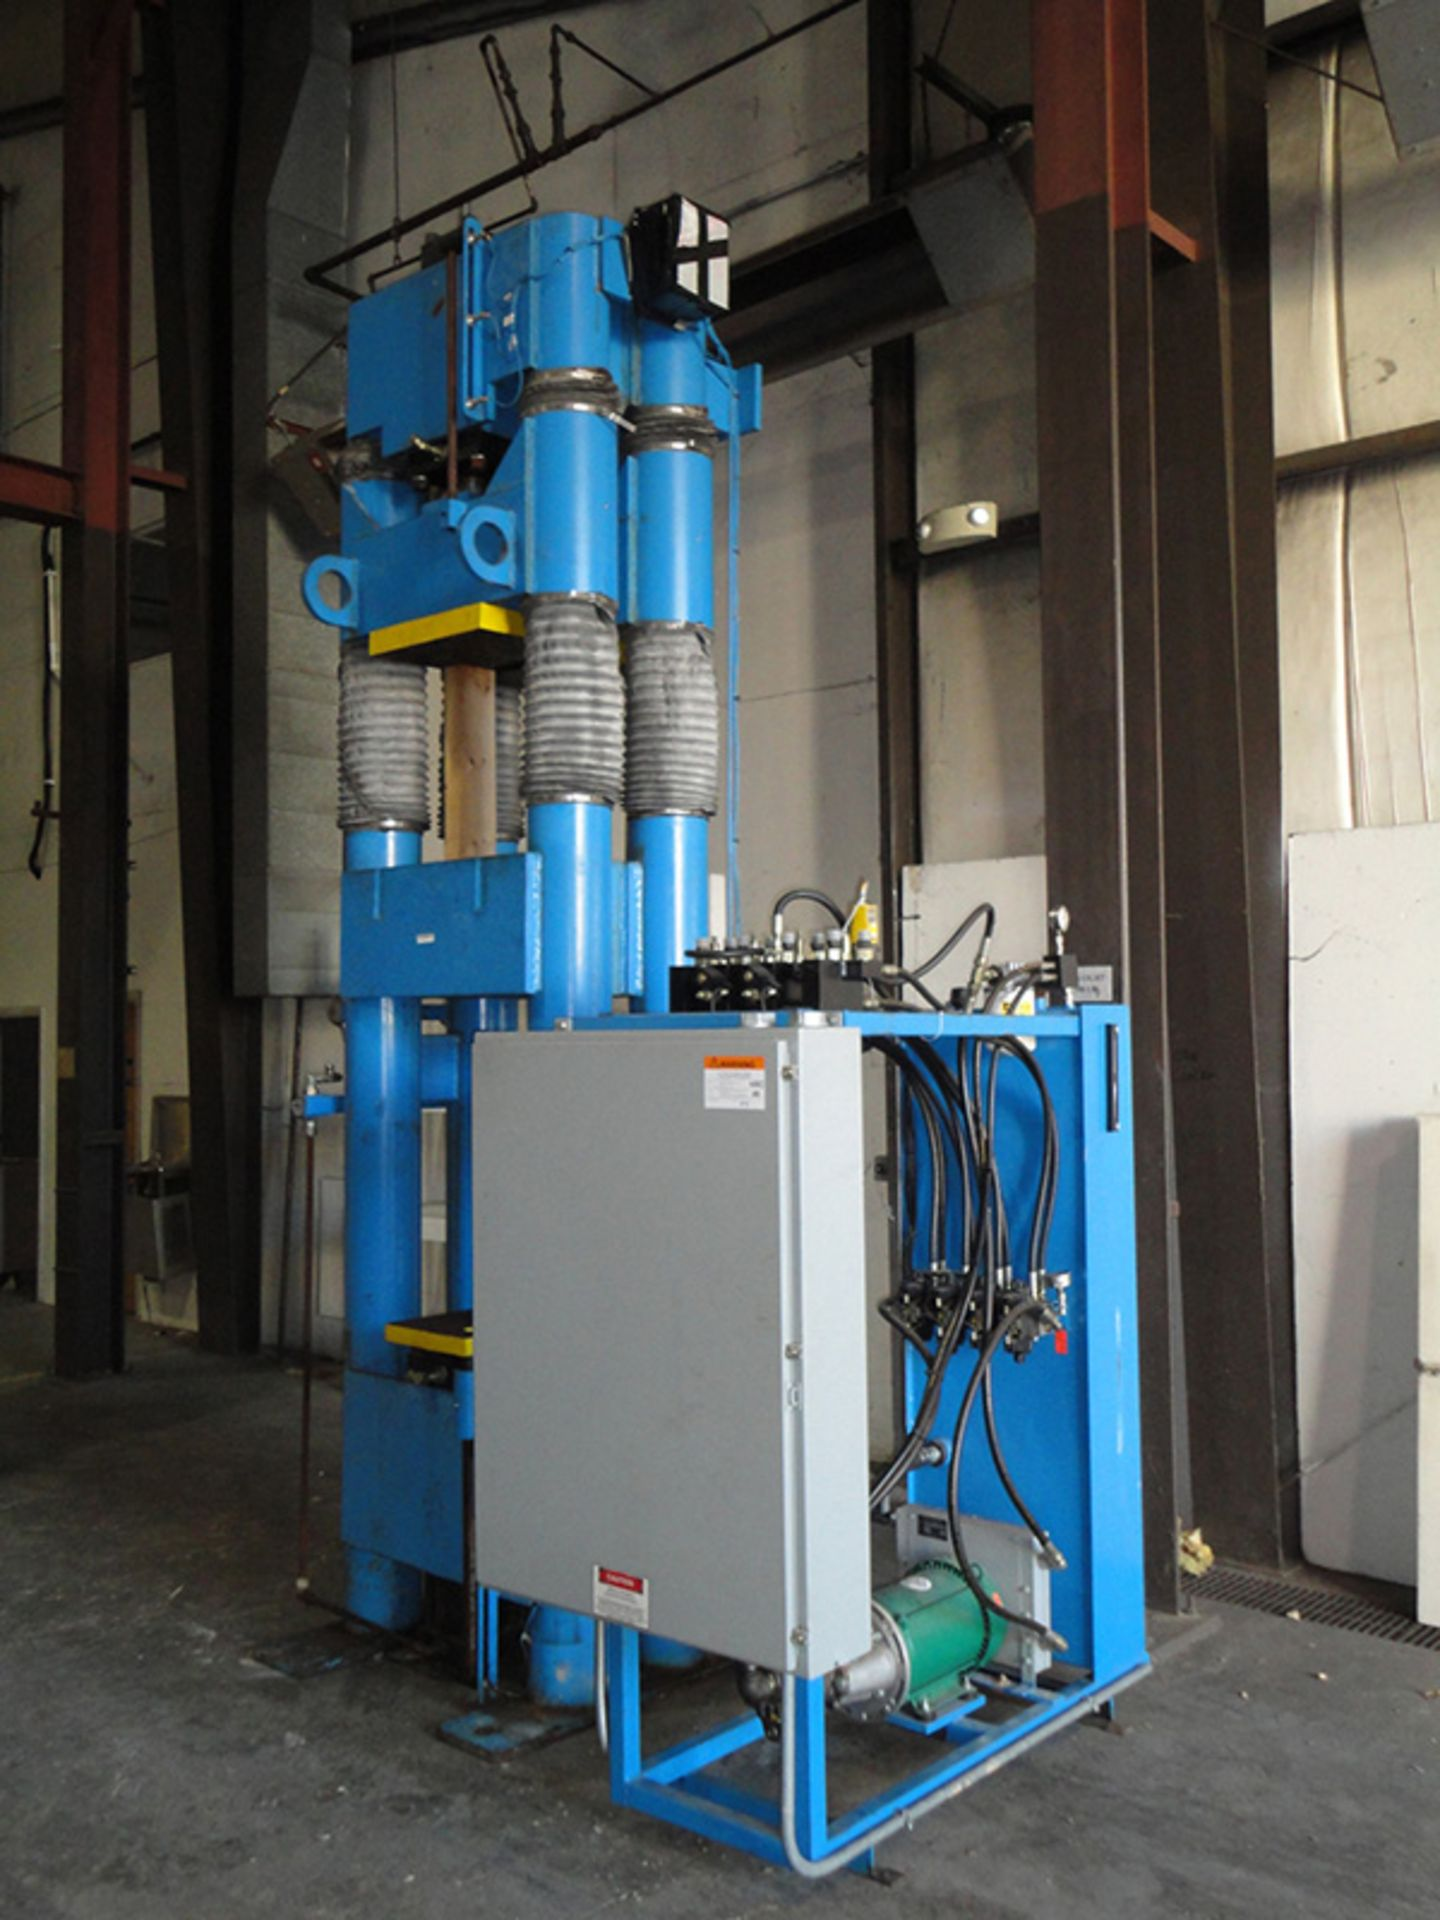 """Lot 23 - 2002 Beckwood Four Post Hydraulic Powder Compaction Press (Up & Down Acting) 